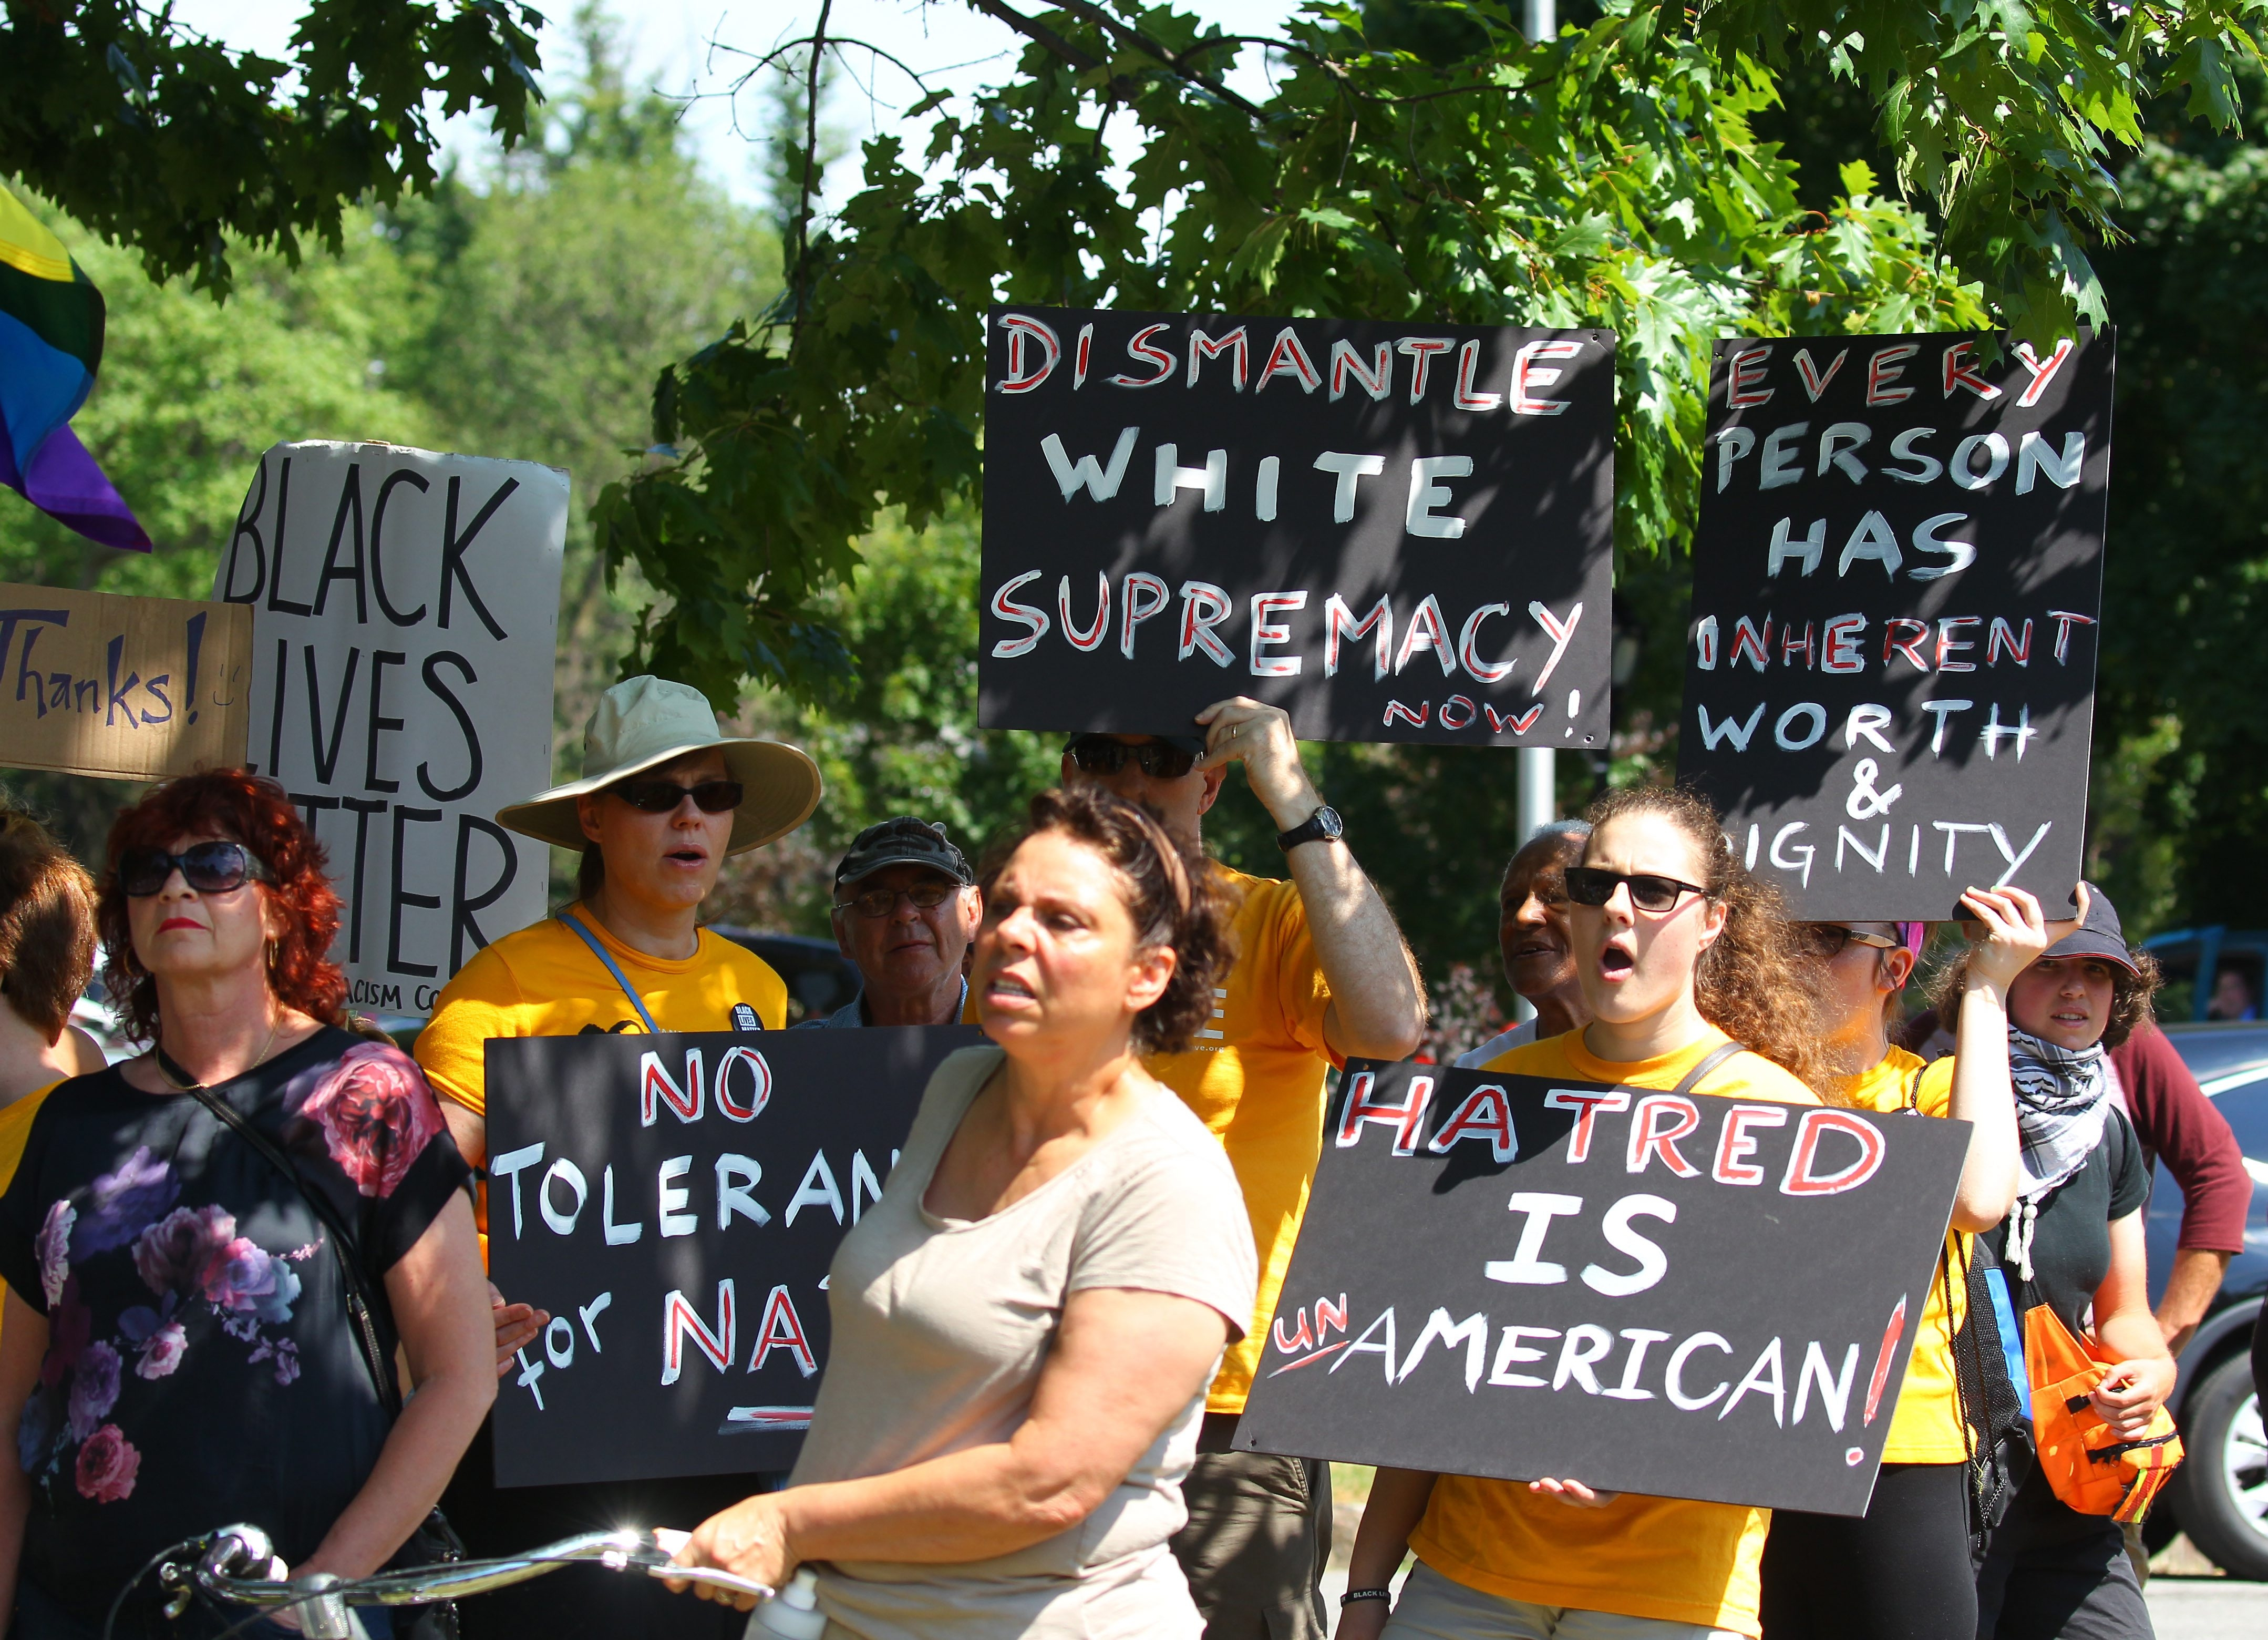 """People against the """"White Lives Matter"""" rally hold up signs in protest at Cazenovia Park on Saturday, July 29, 2016. (Mark Mulville/Buffalo News)"""